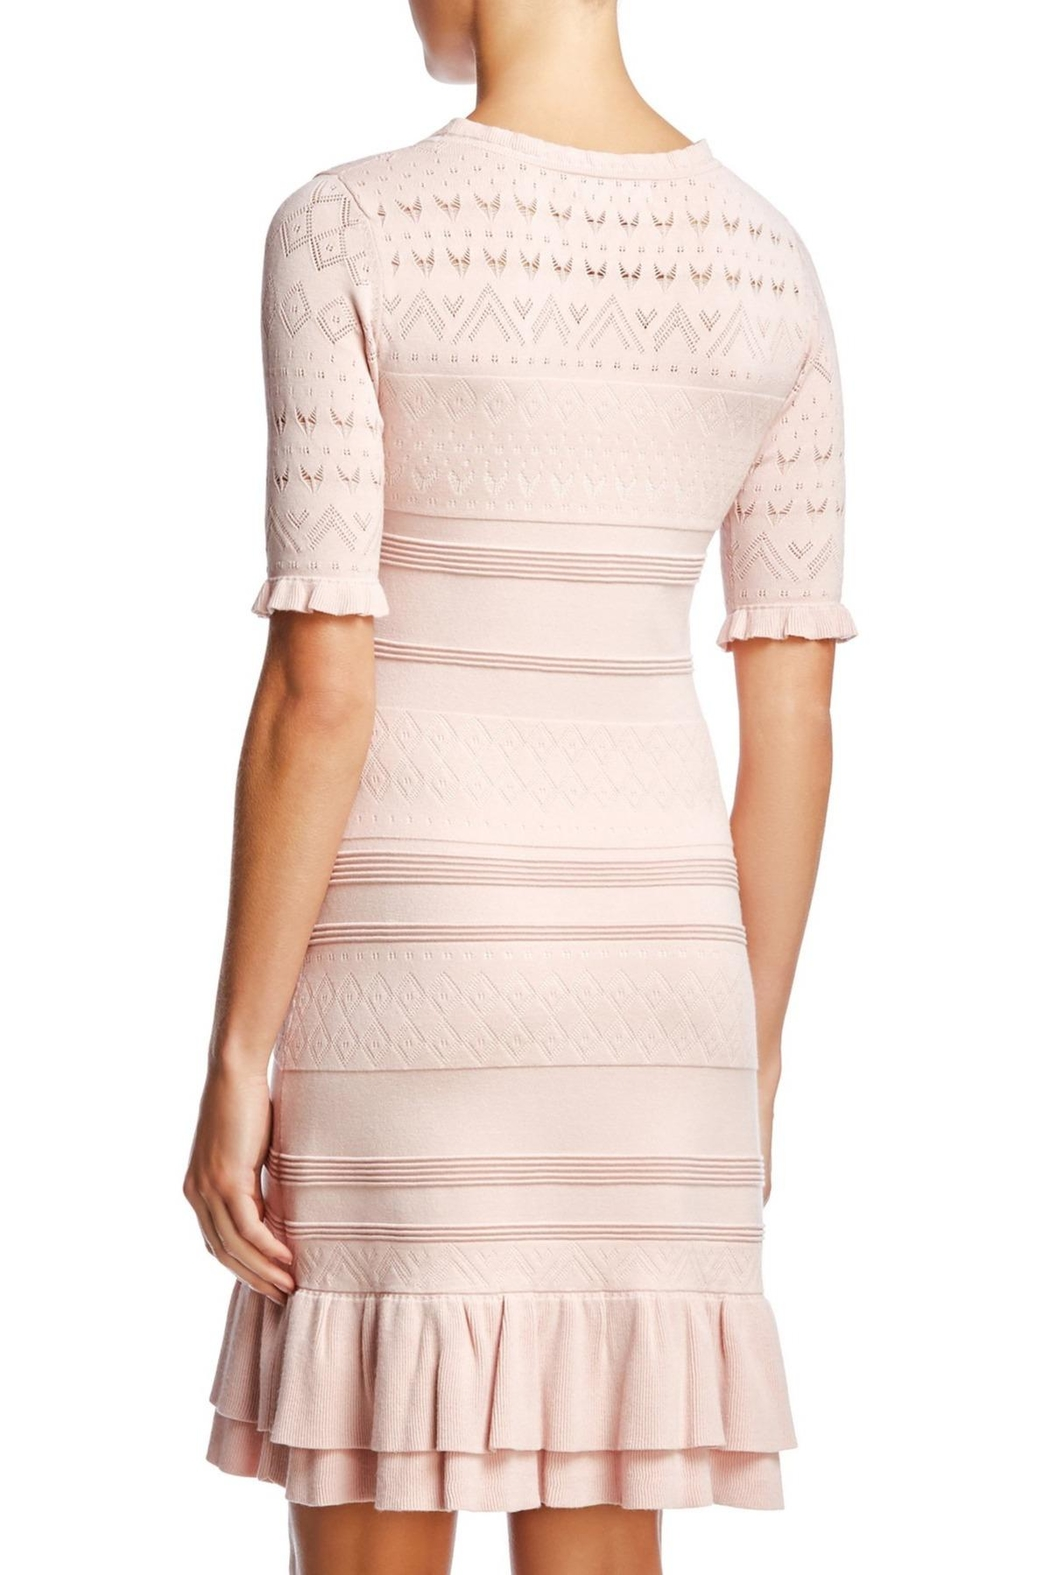 Bailey 44 Feminine Knit Dress - Side Cropped Image